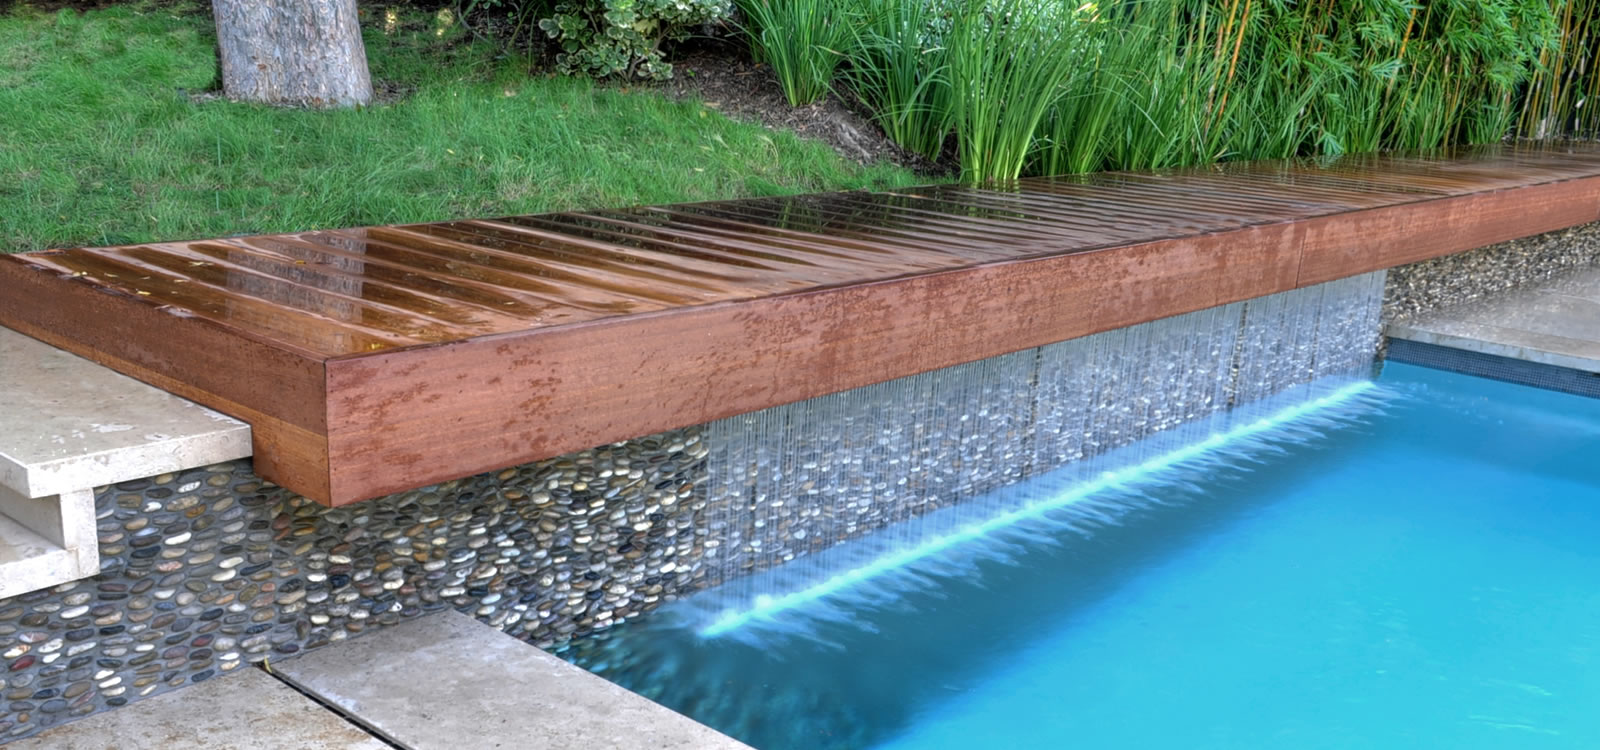 Pool Design Los Angeles pool contractors los angeles Specializing In Distinctive Swimming Pool Designs Ozone Pools Salt Water Pools And More John Crystal Pools Los Angeles